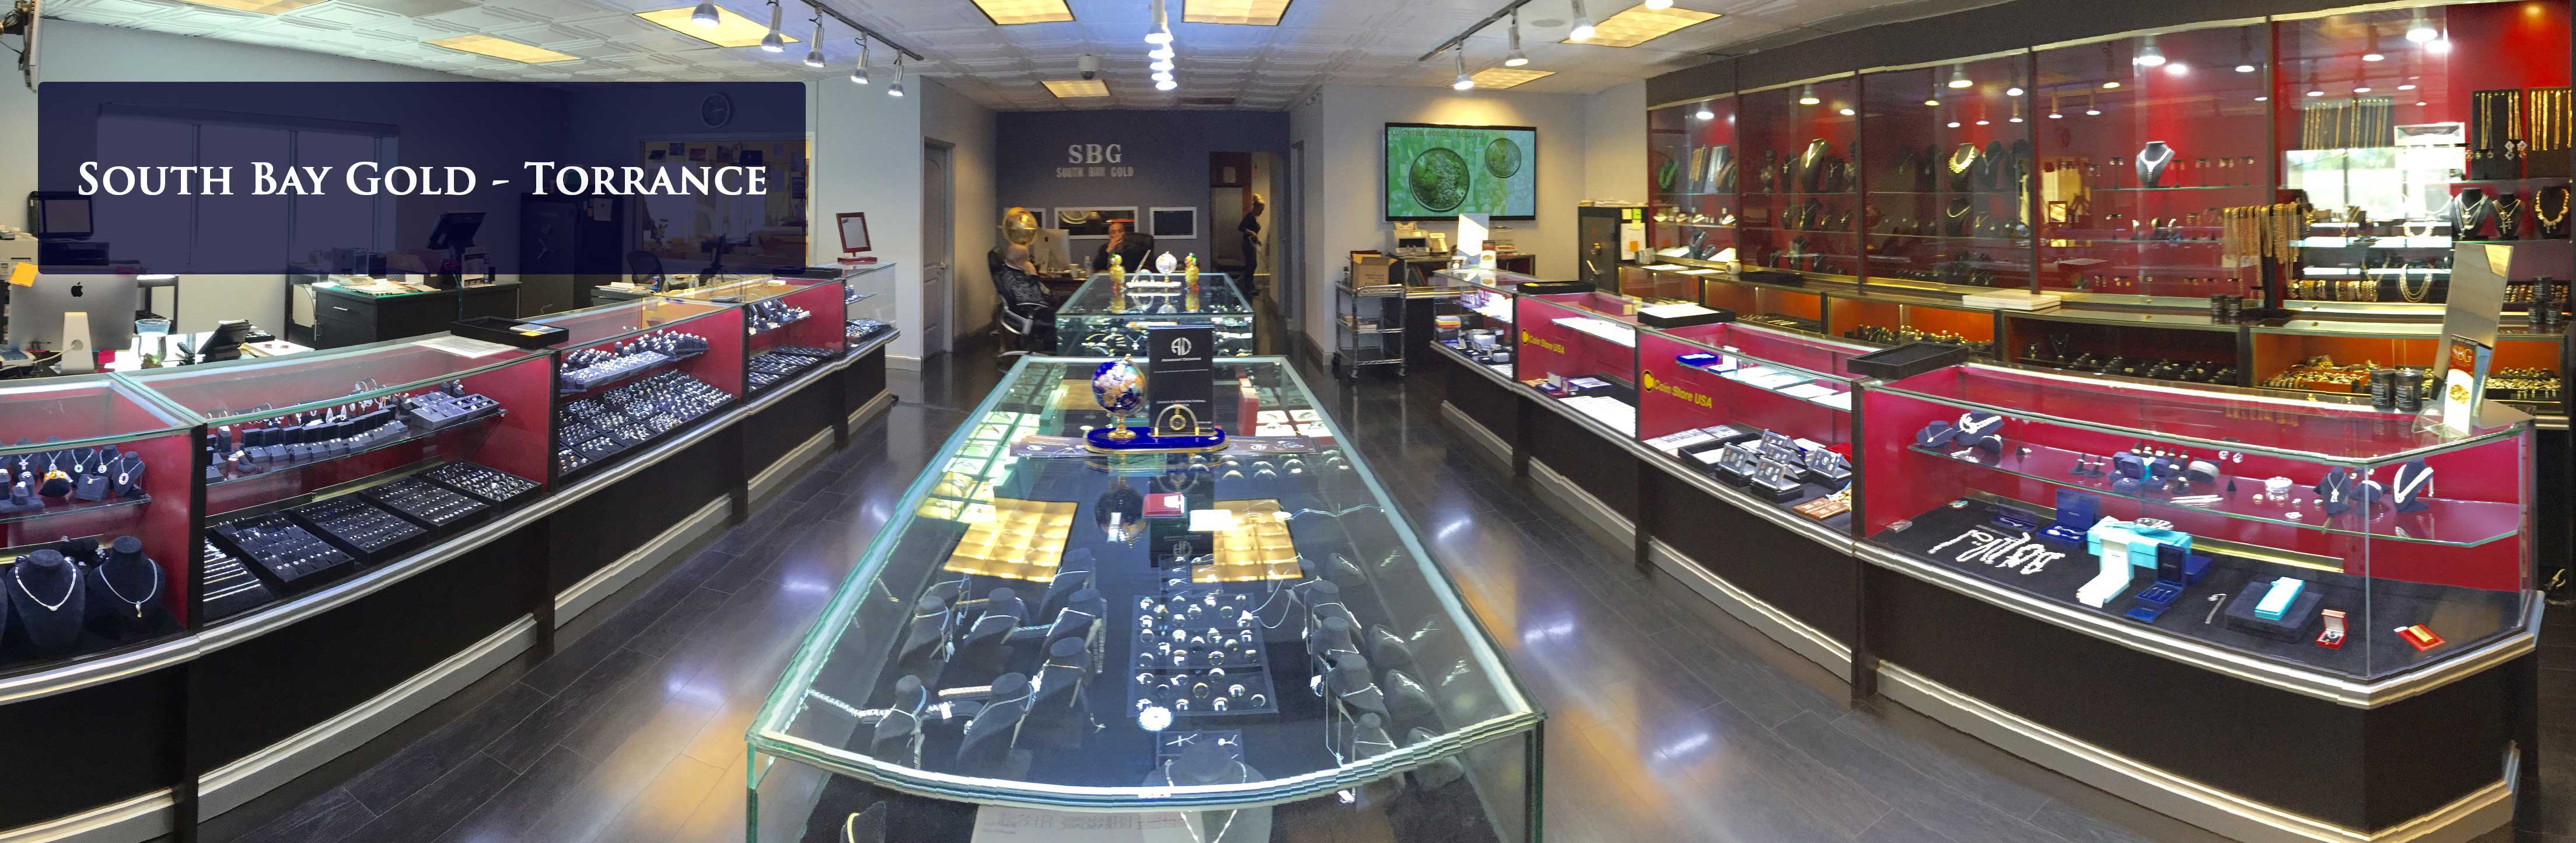 South Bay Gold Jewelry Store Torrance